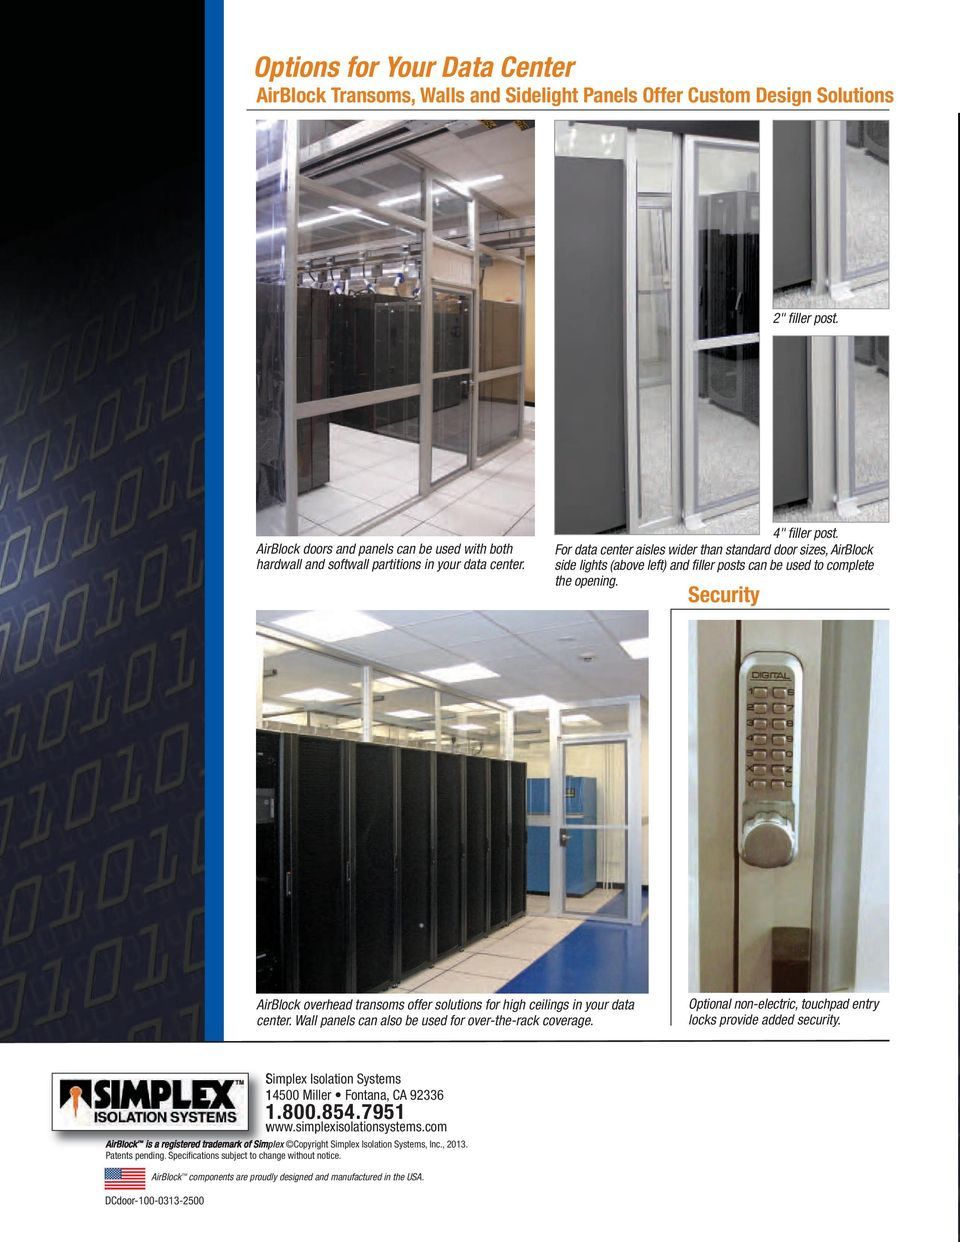 For data center aisles wider than standard door sizes, AirBlock side lights (above left) and filler posts can be used to complete the opening.